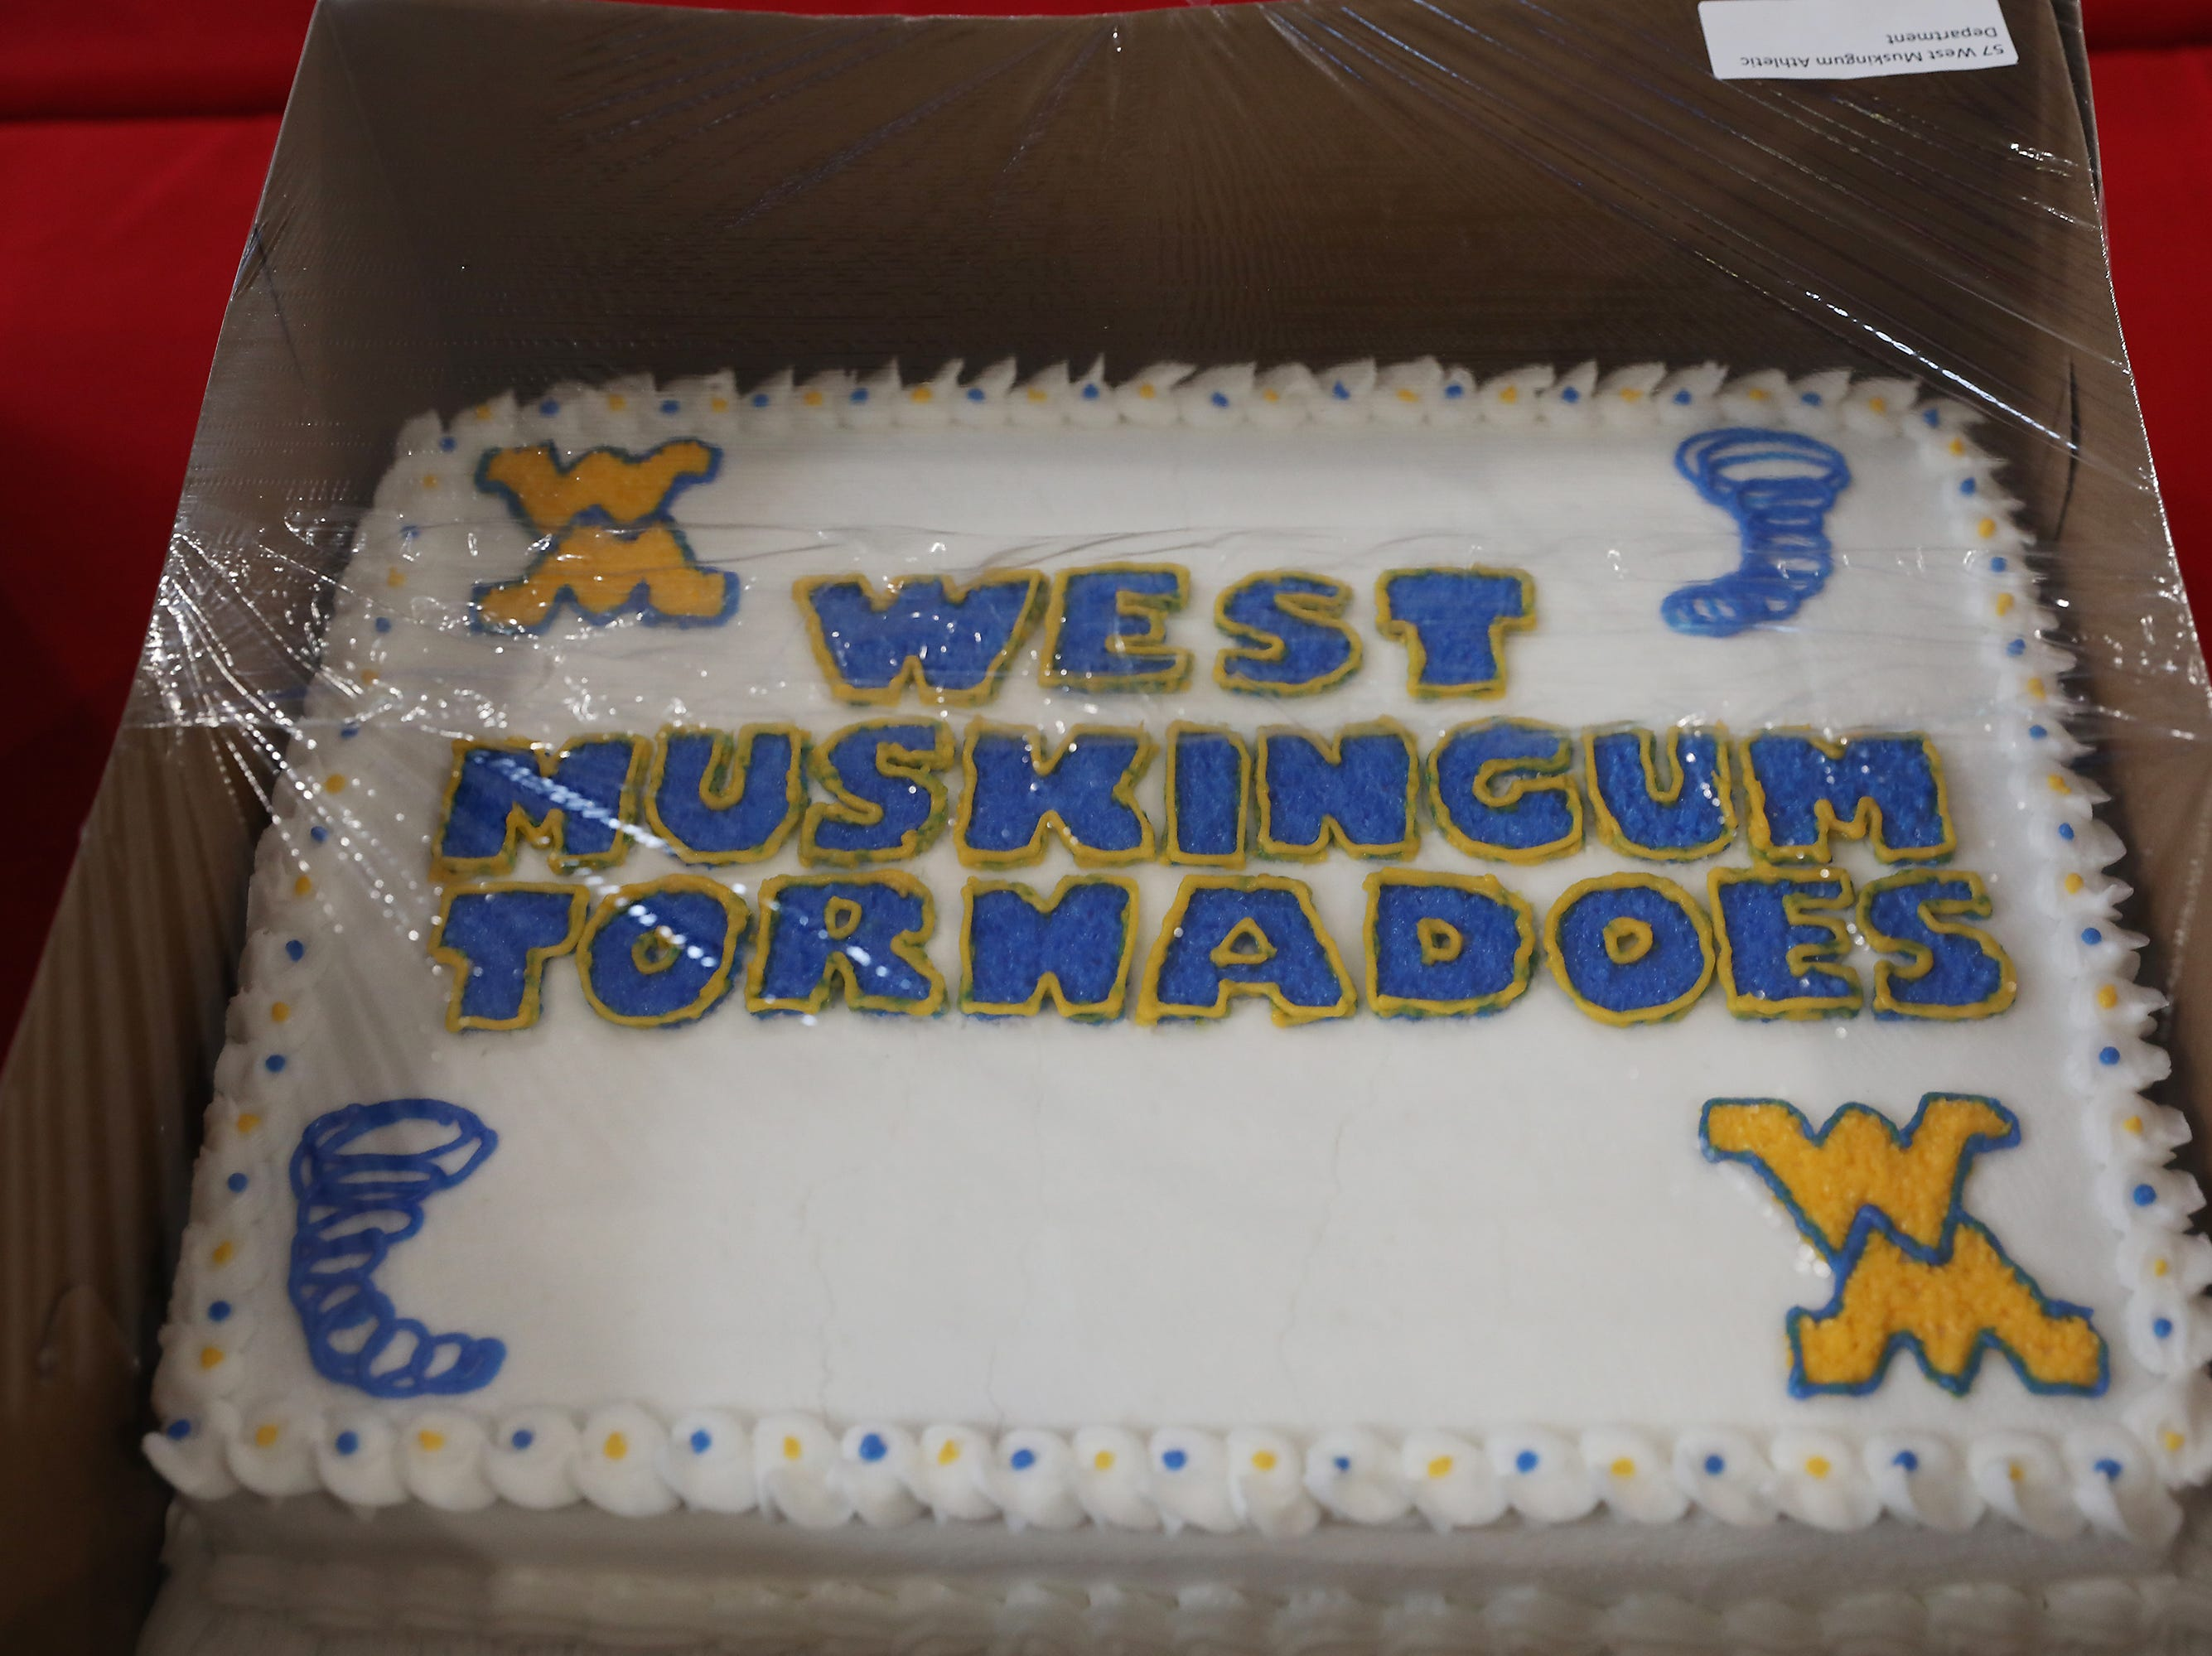 10:30 A.M. Thursday cake 57 West Muskingum Athletic Department - 2 adult full year athletic passes: $150